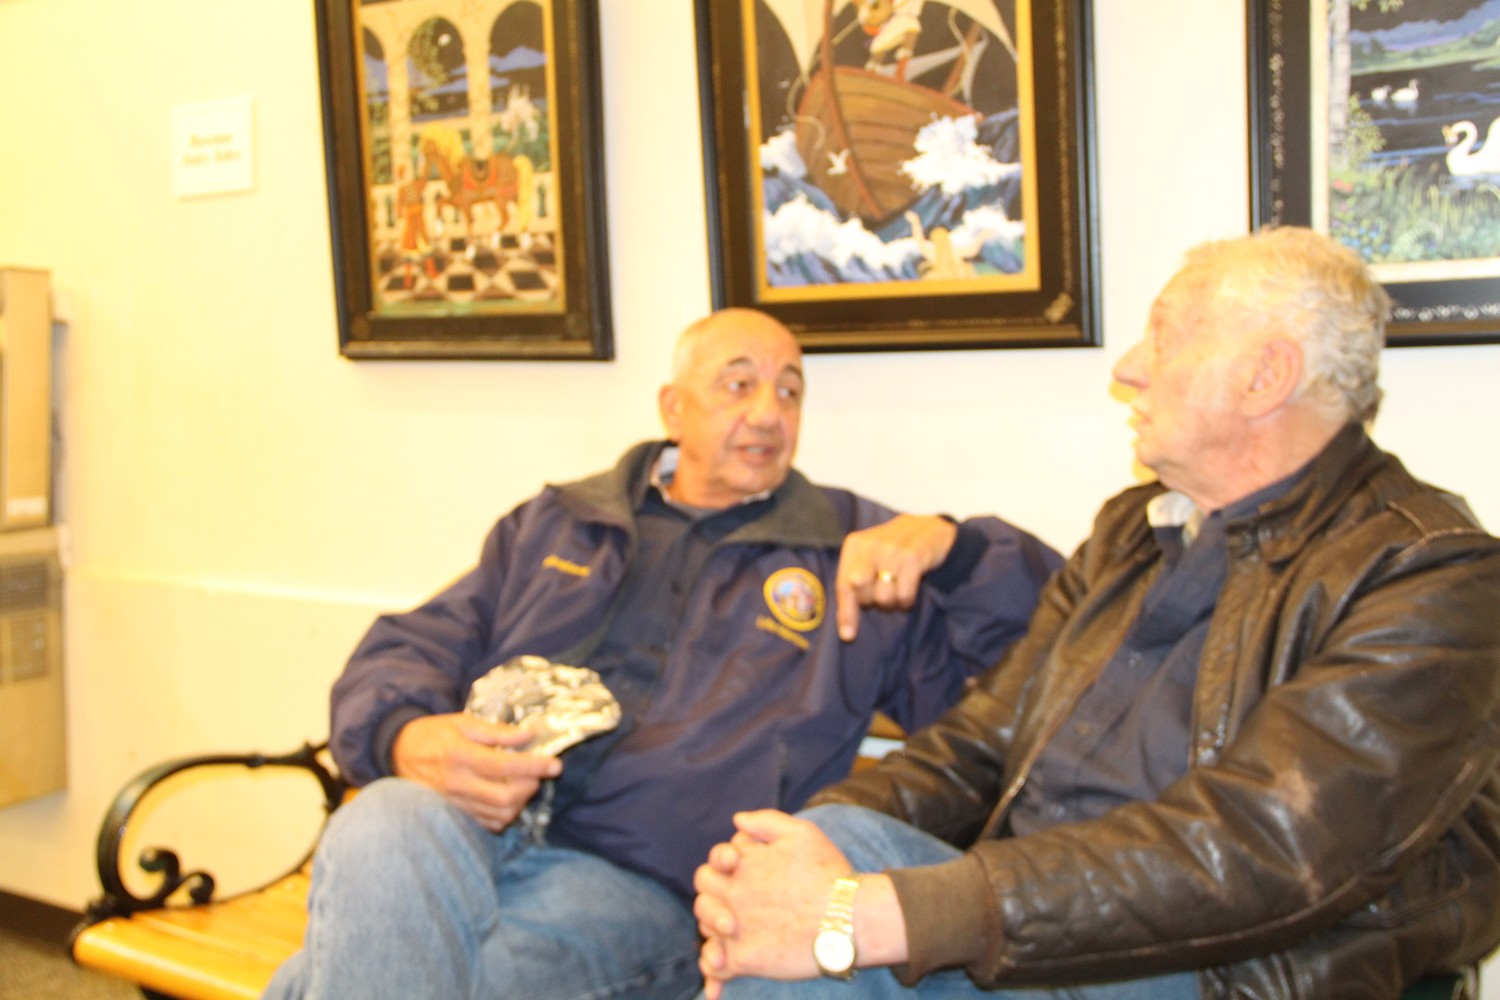 Longtime friend, Sal Rizza, left, from Freeport stopped by to chat with Bill Marinaccio, right, Alexandra Marinaccio's husband during the artist reception.